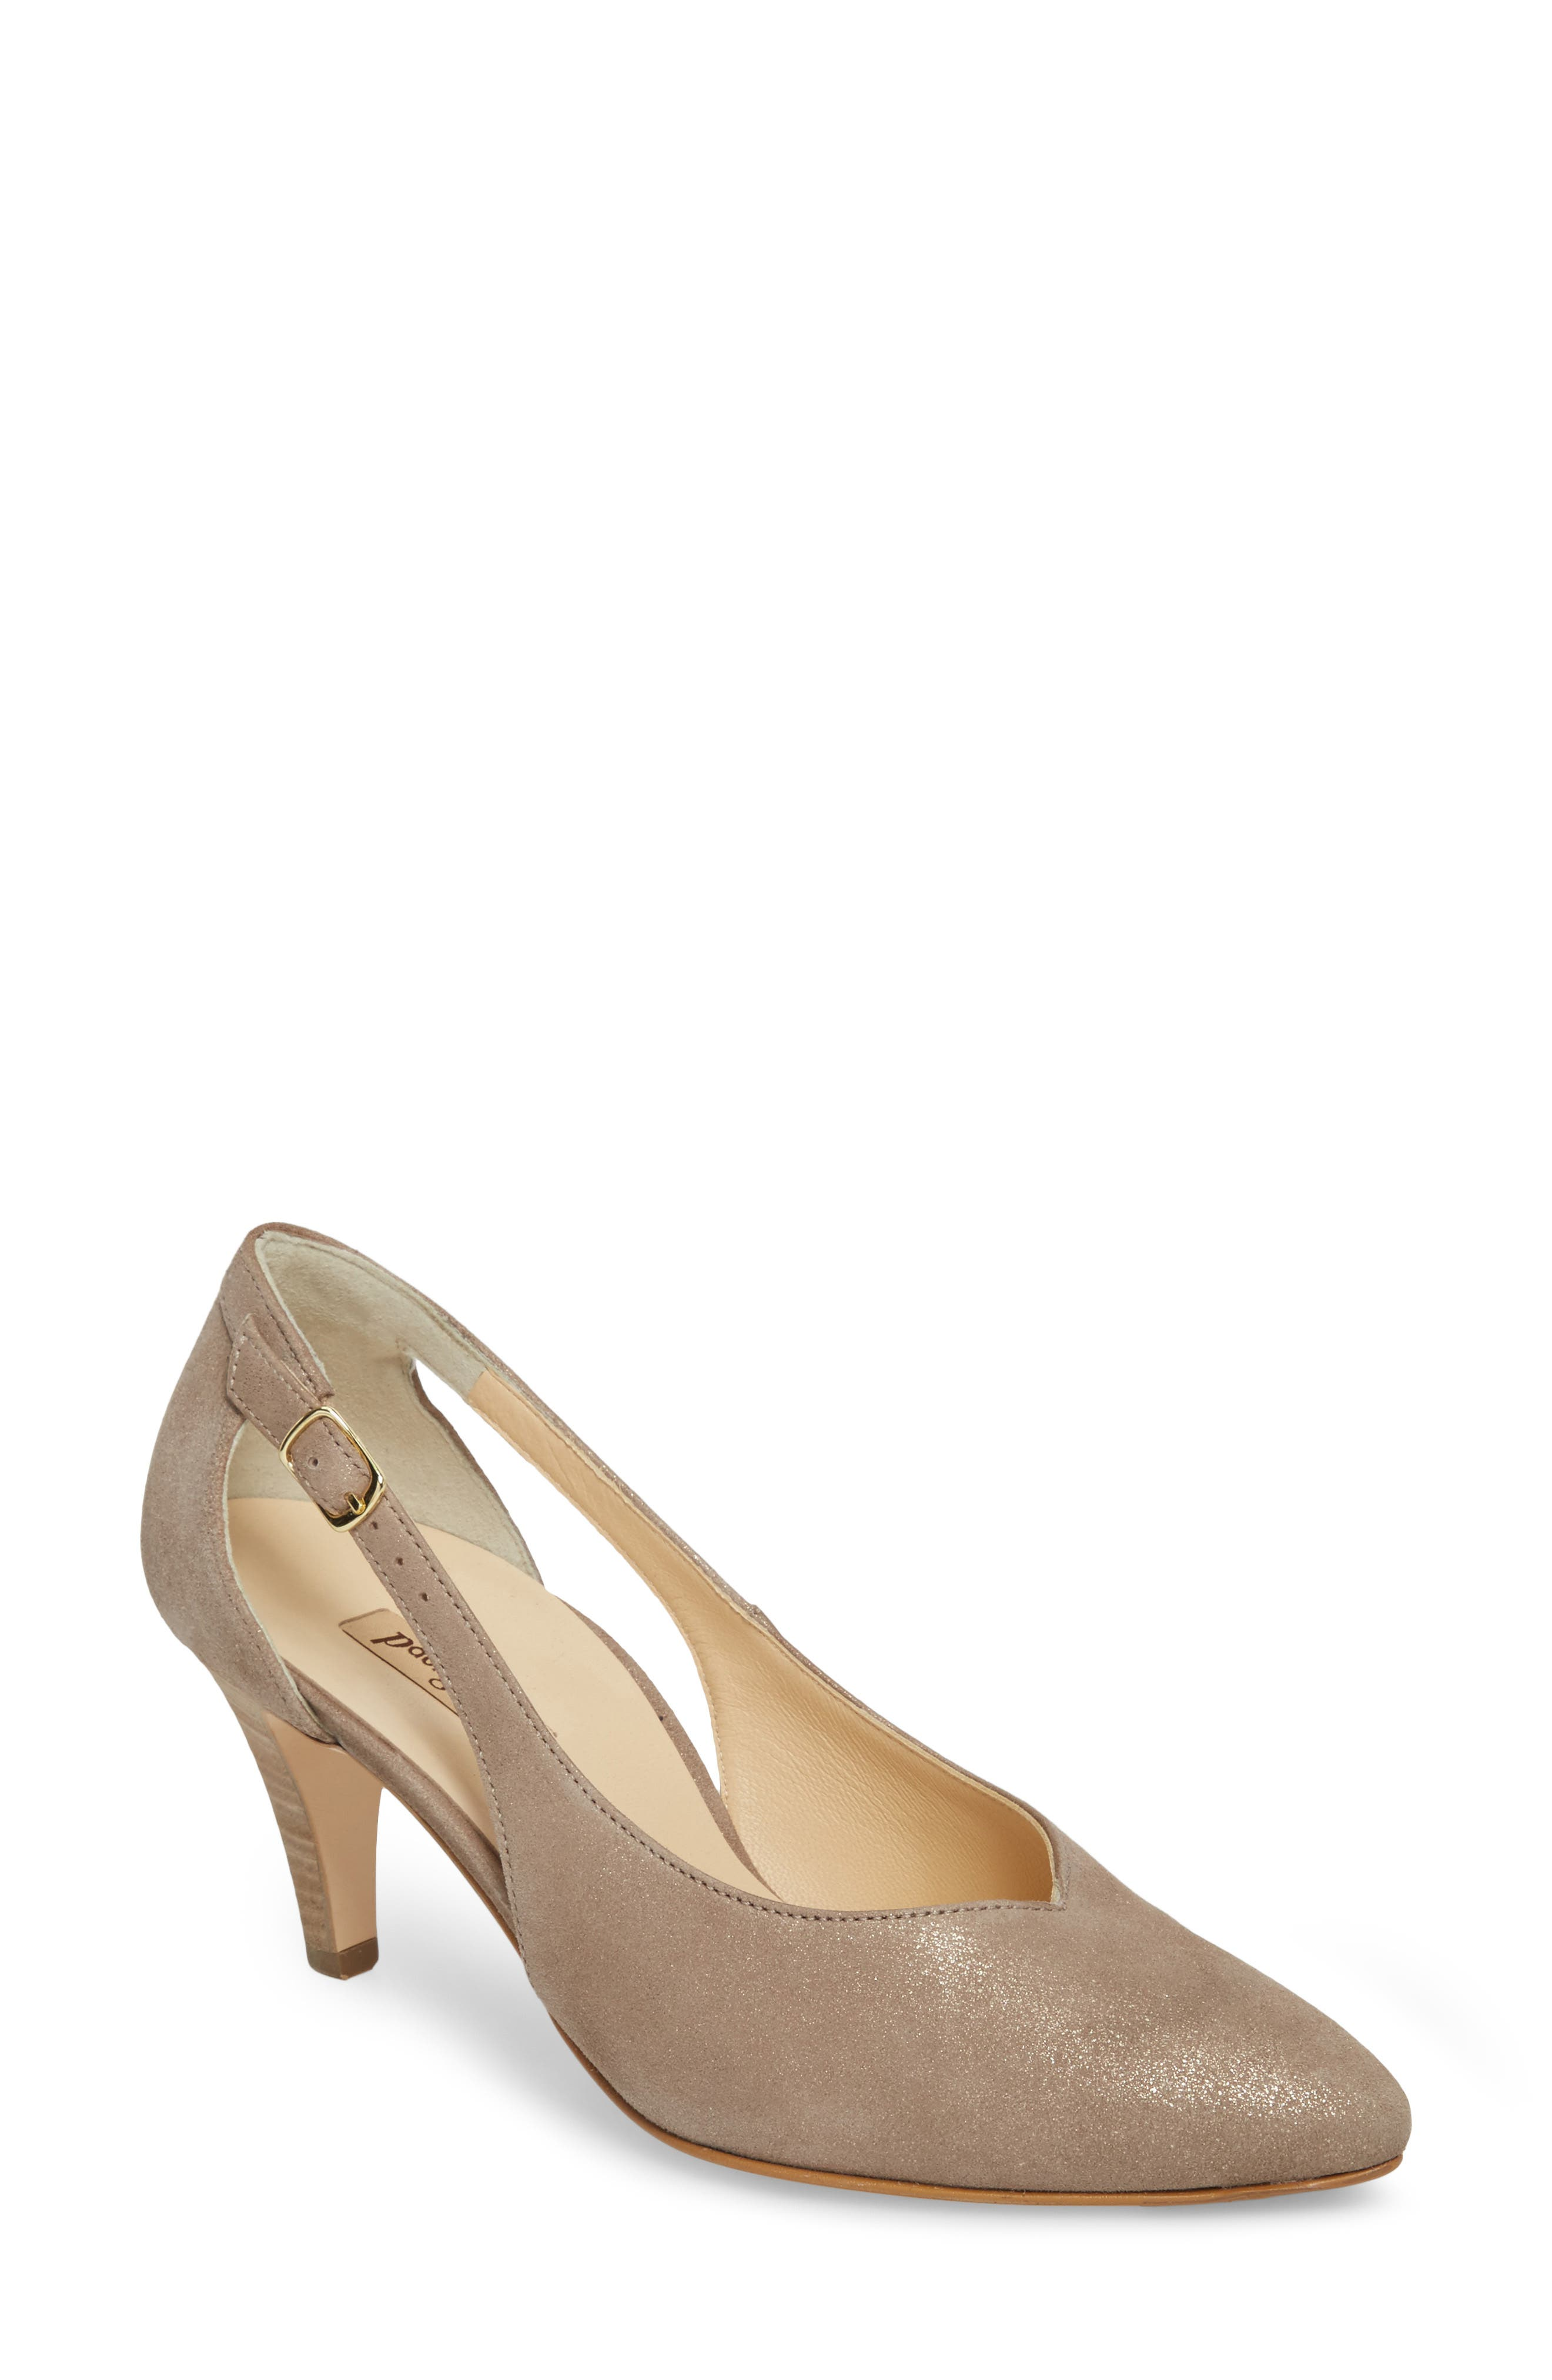 Main Image - Paul Green Sasha Pump (Women)